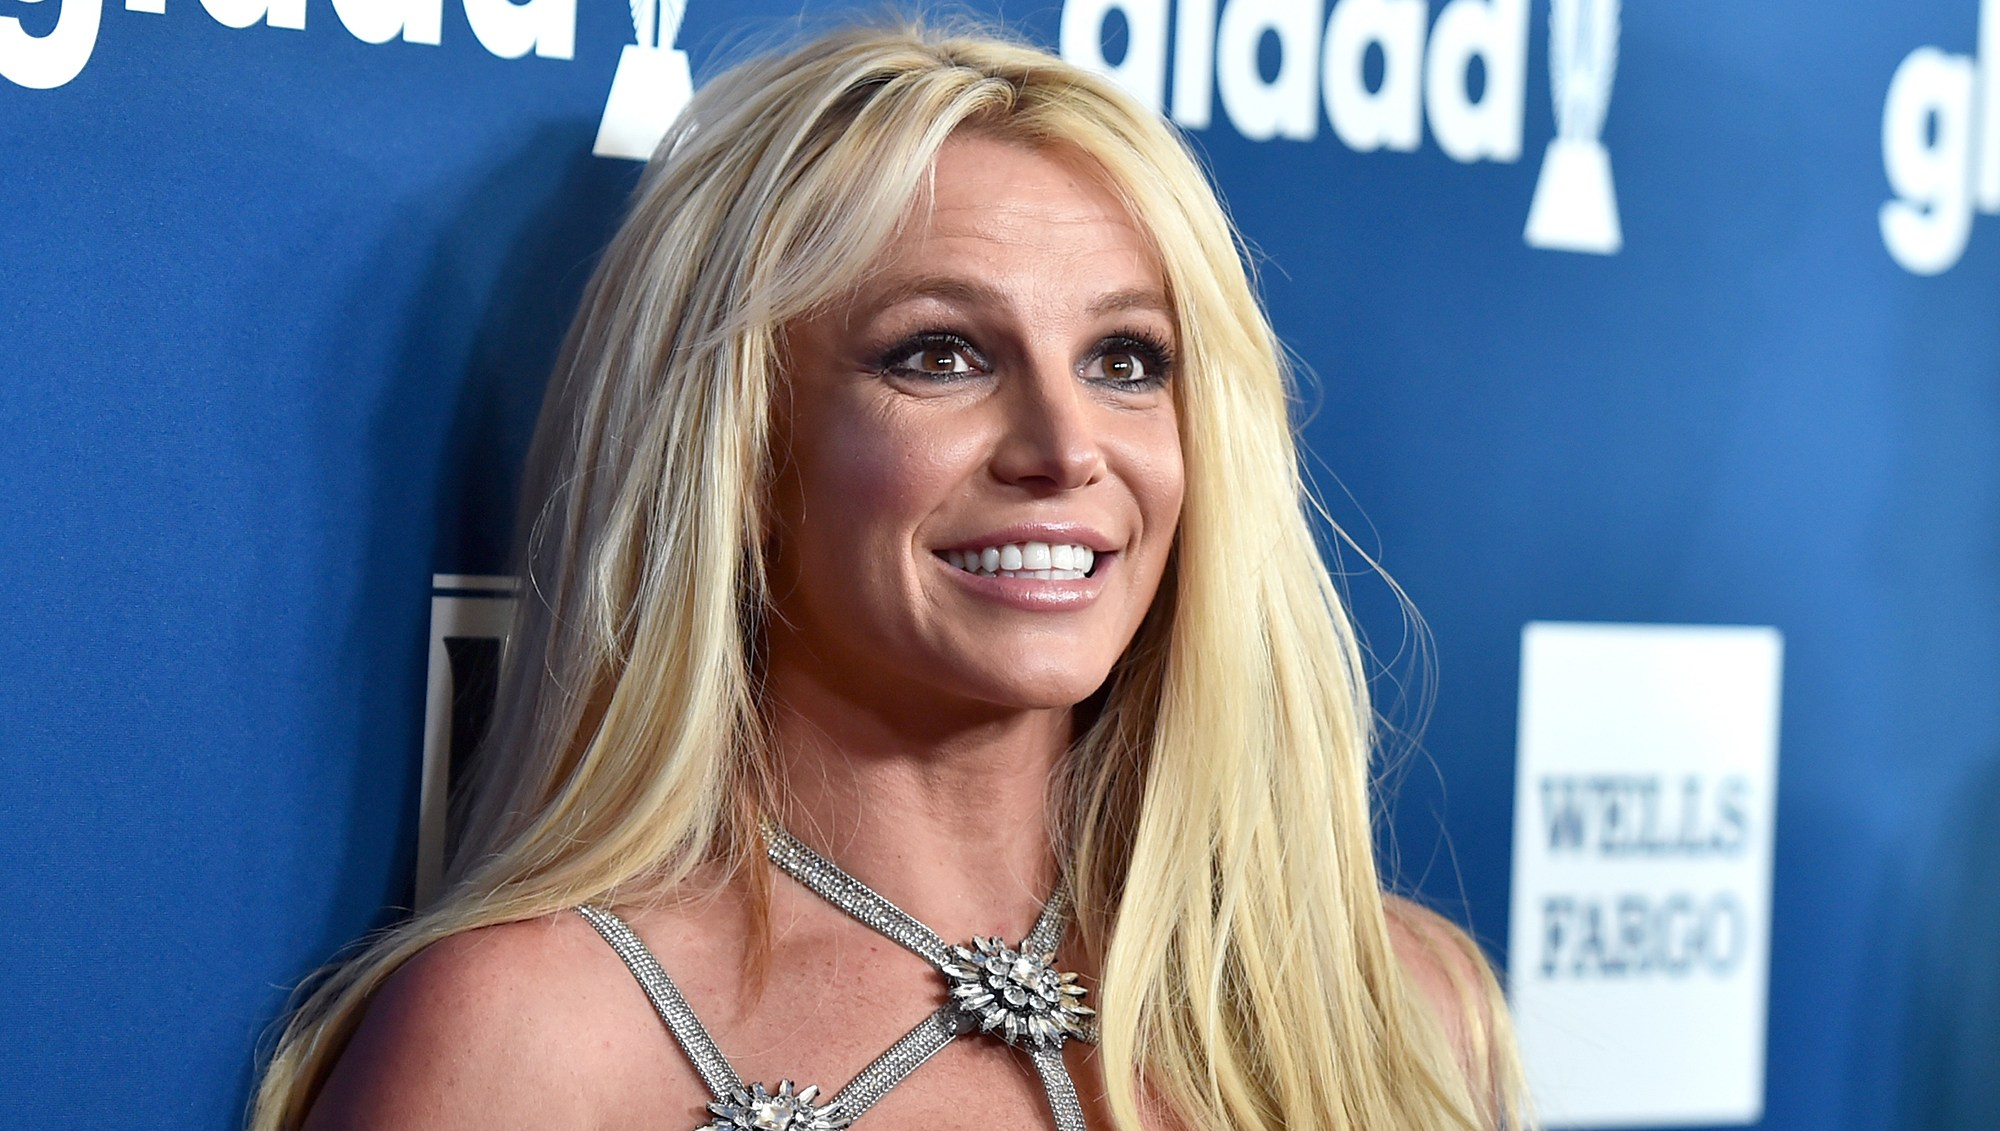 Britney Spears Is in Much Better Place Than She Was 10 Years Ago After Breakdown